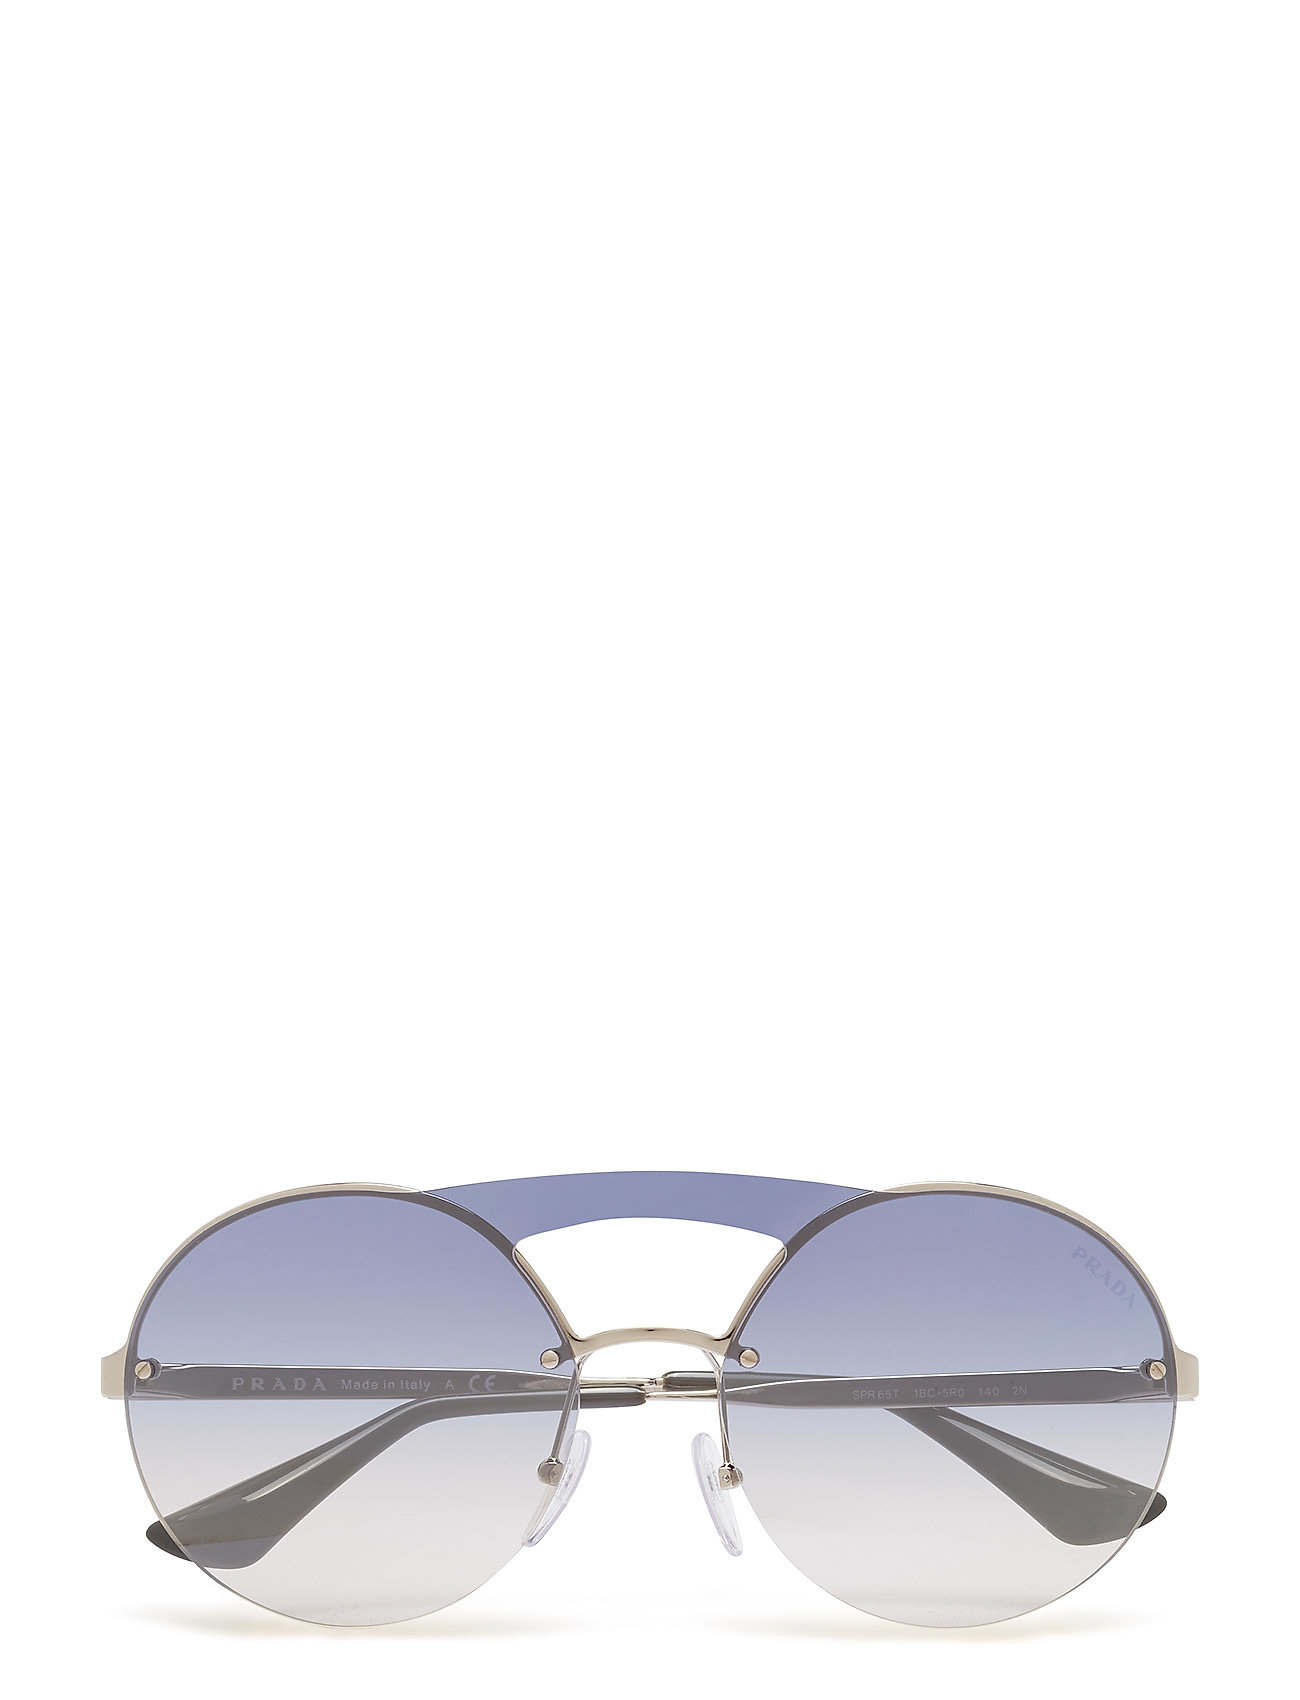 Image of Not Defined Solbriller Blå Prada Sunglasses (3406136371)